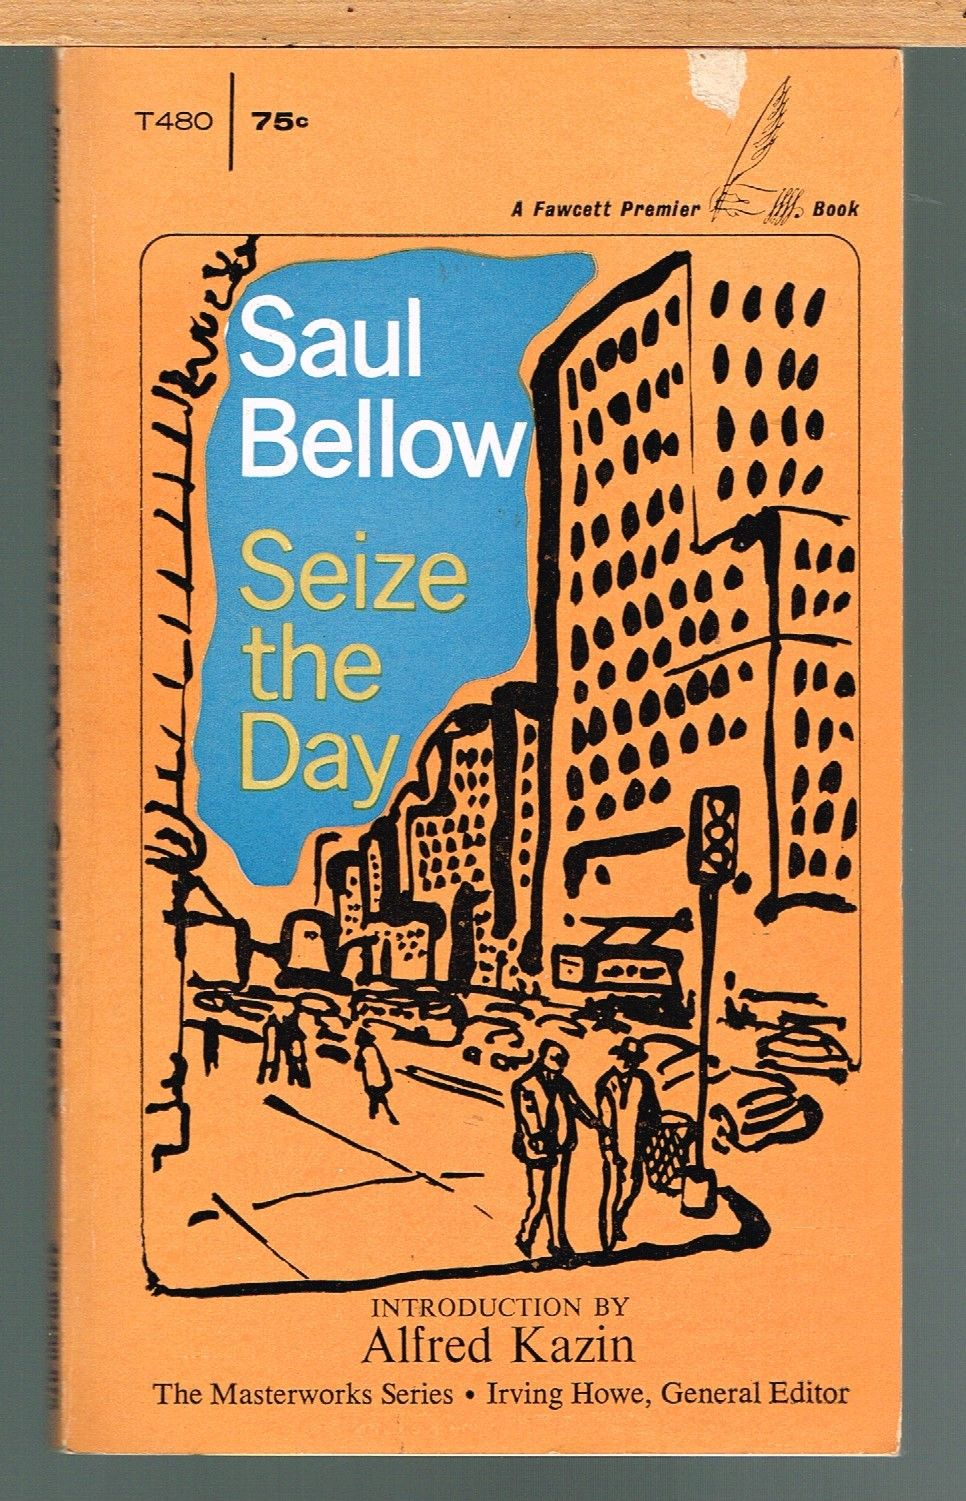 a review of saul bellows novel seize the day Buy saul bellow: letters by saul  human mess saul bellow s letters are a saul bellow novel,  seize the day and the victim saul bellow died.